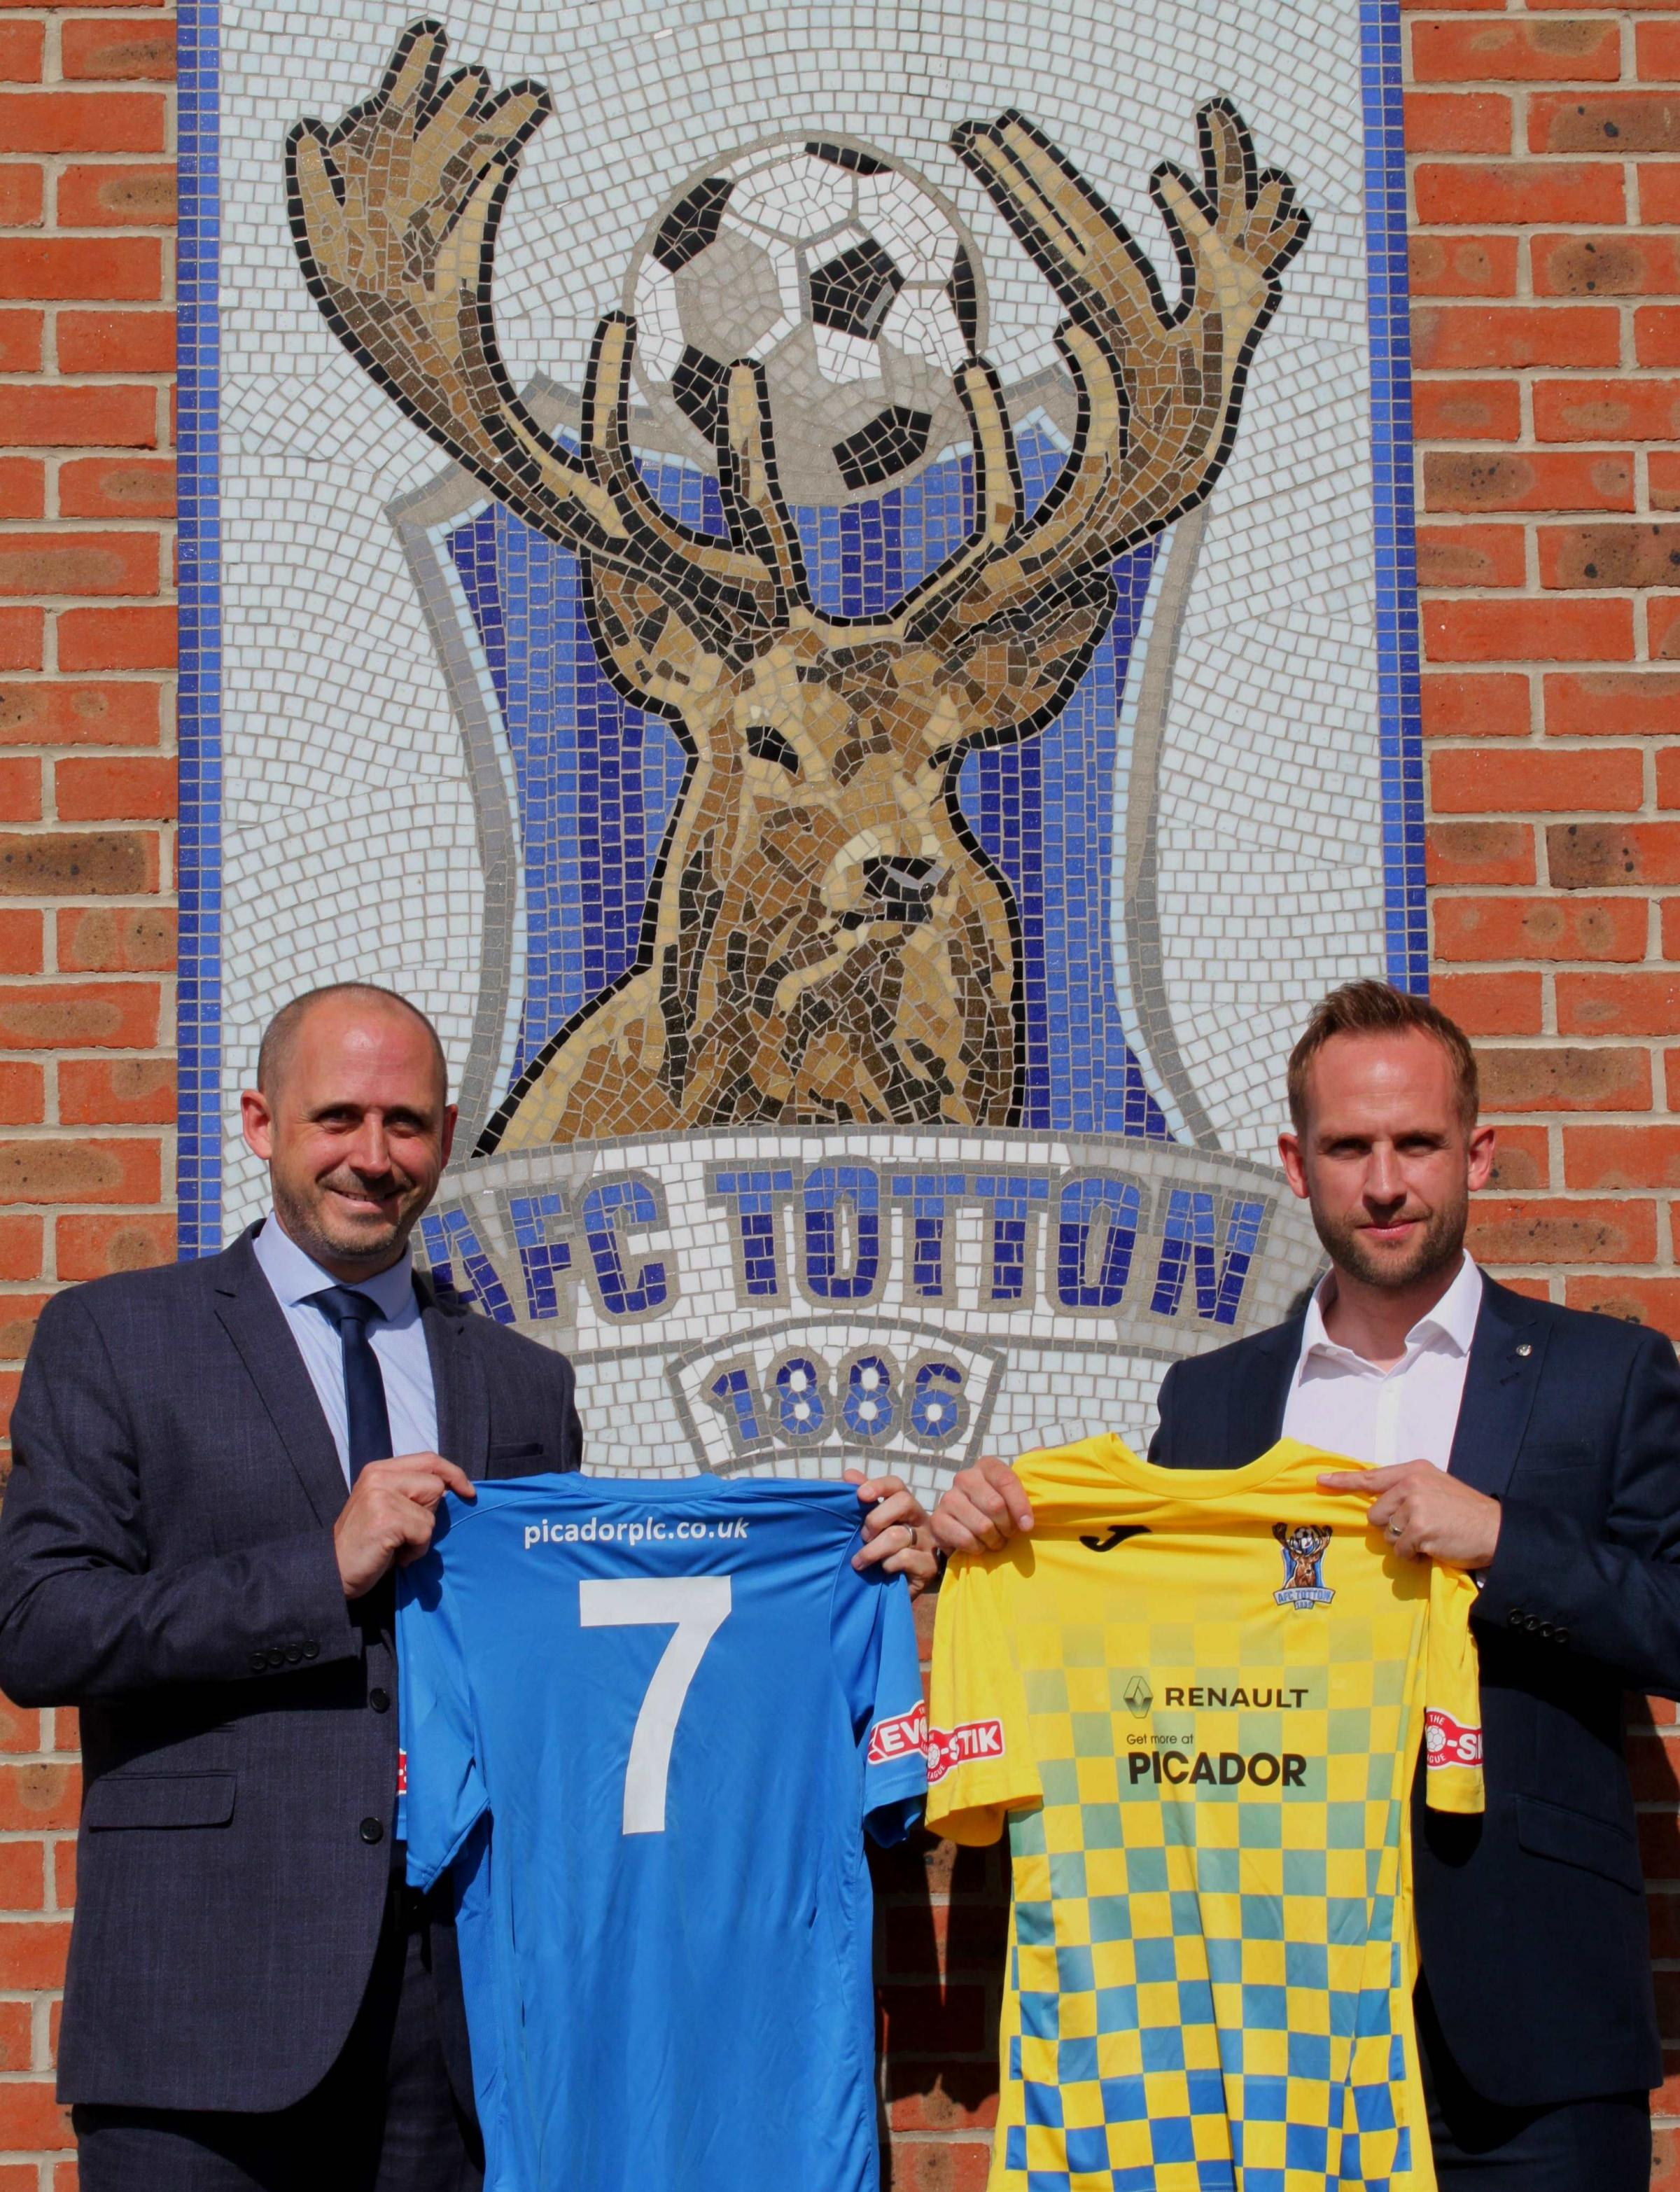 Picador group marketing manager Paul Wilde (left) with AFC Totton assistant manager Adam Wilde